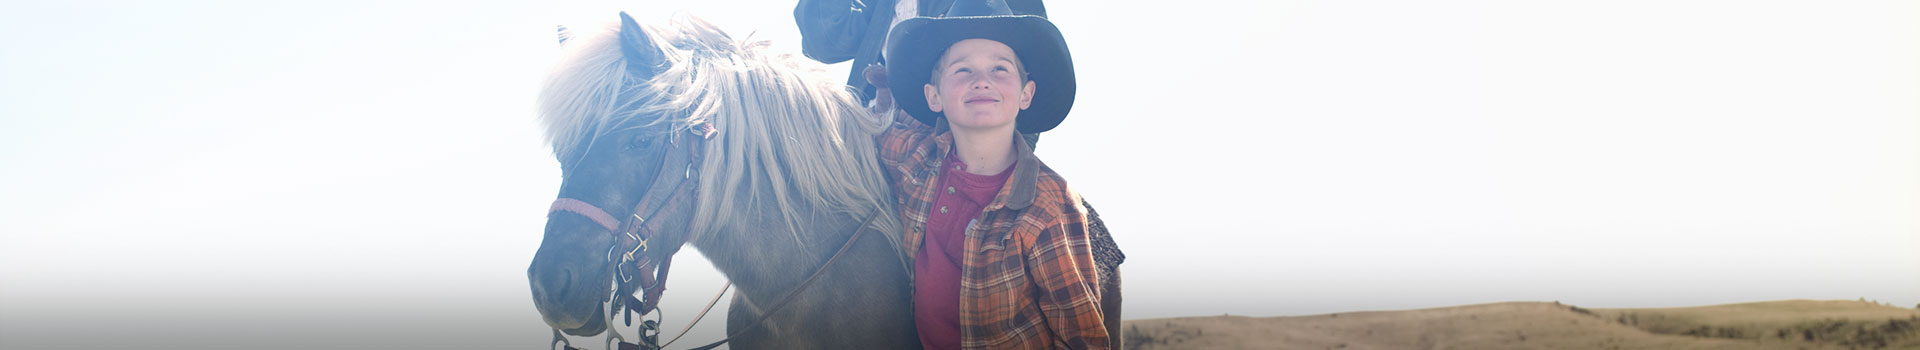 young boy in cowboy hat standing by pony